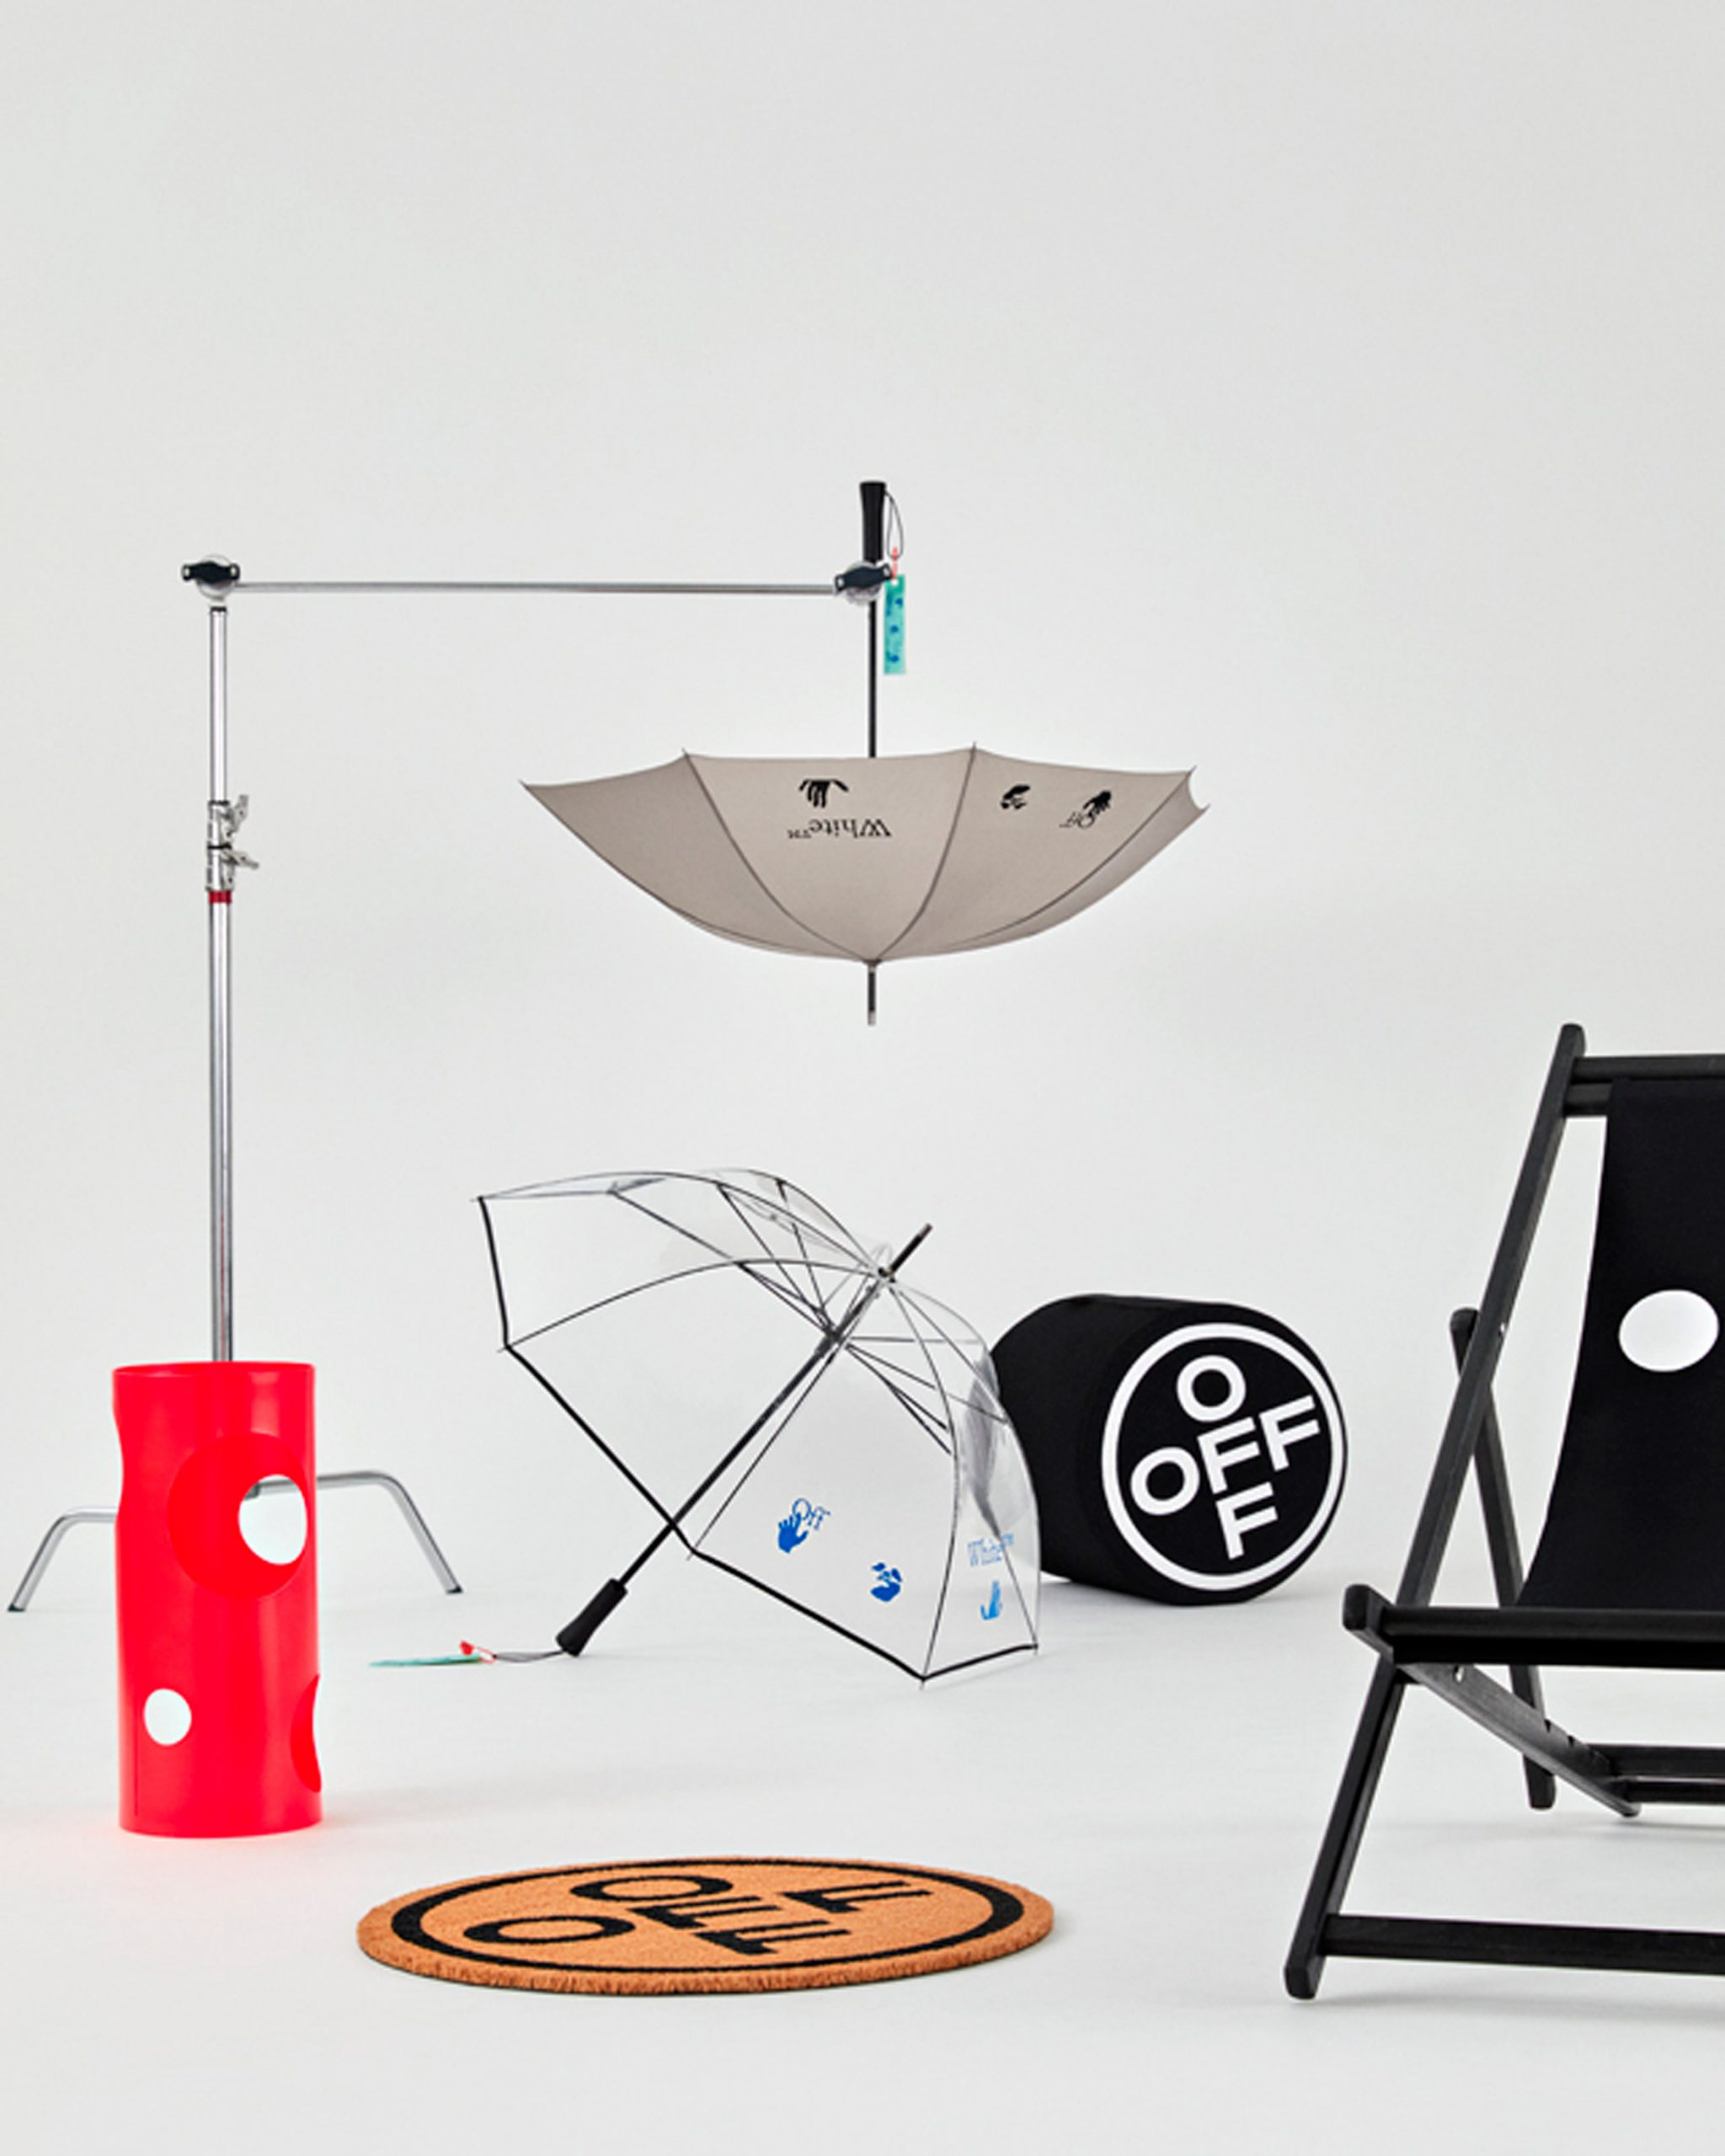 Doormats, umbrellas and umbrella stands in HOME collection by Off-White